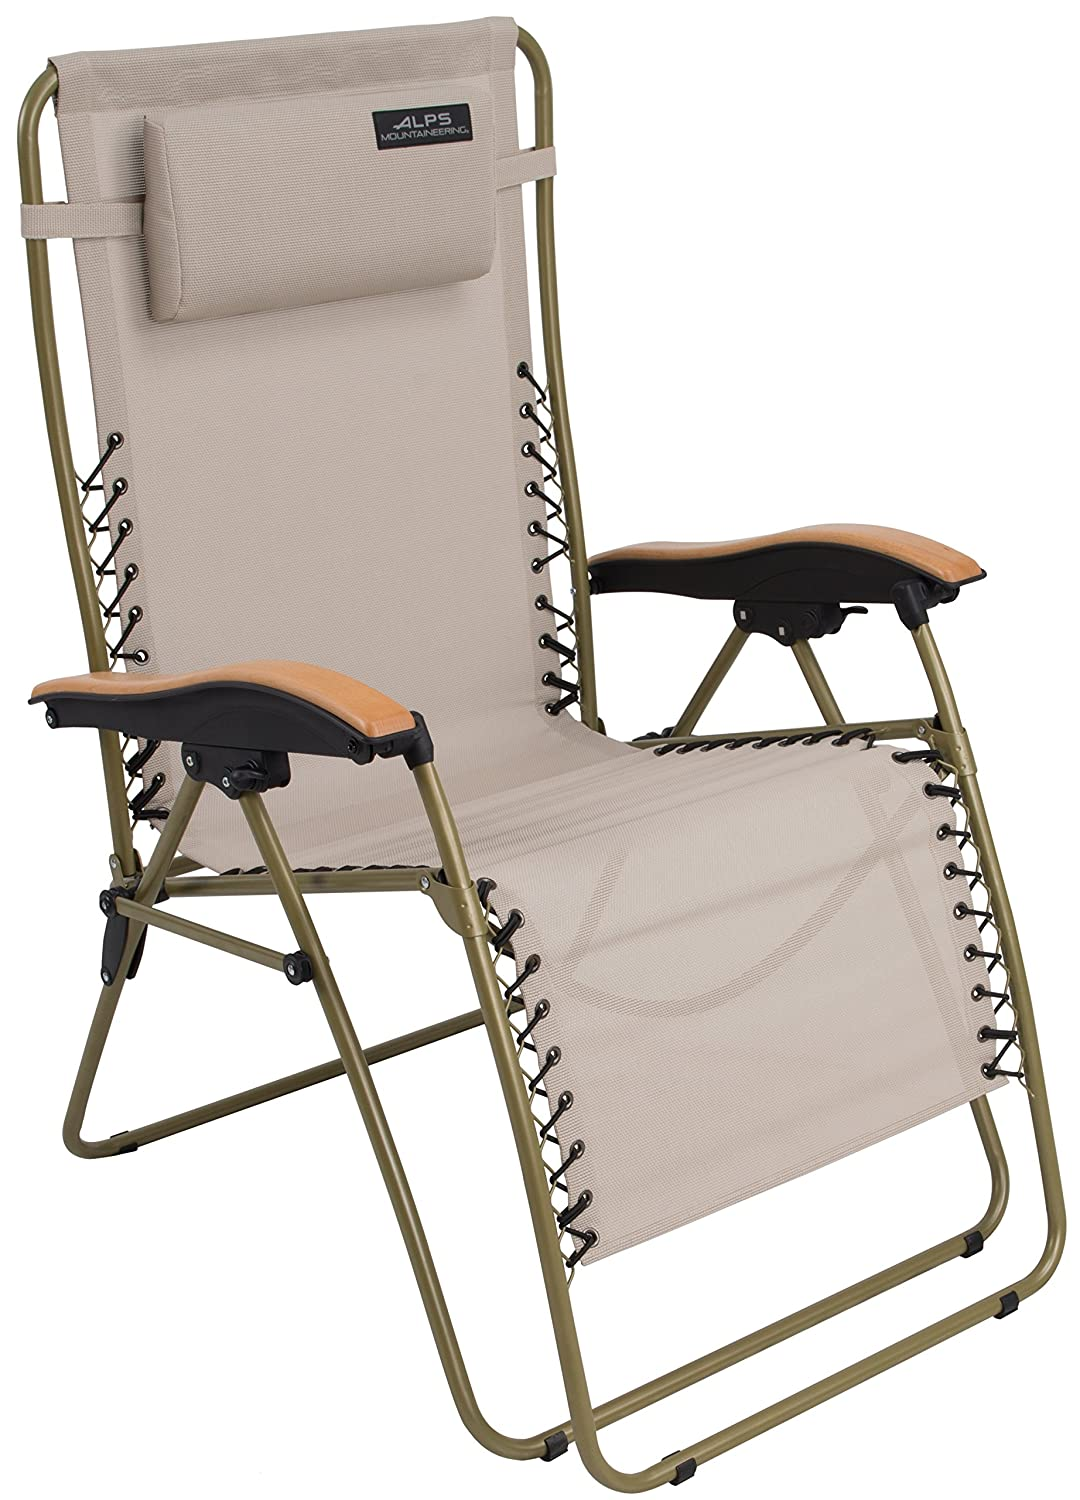 ALPS Mountaineering Lay-Z Lounger Chair 8121115